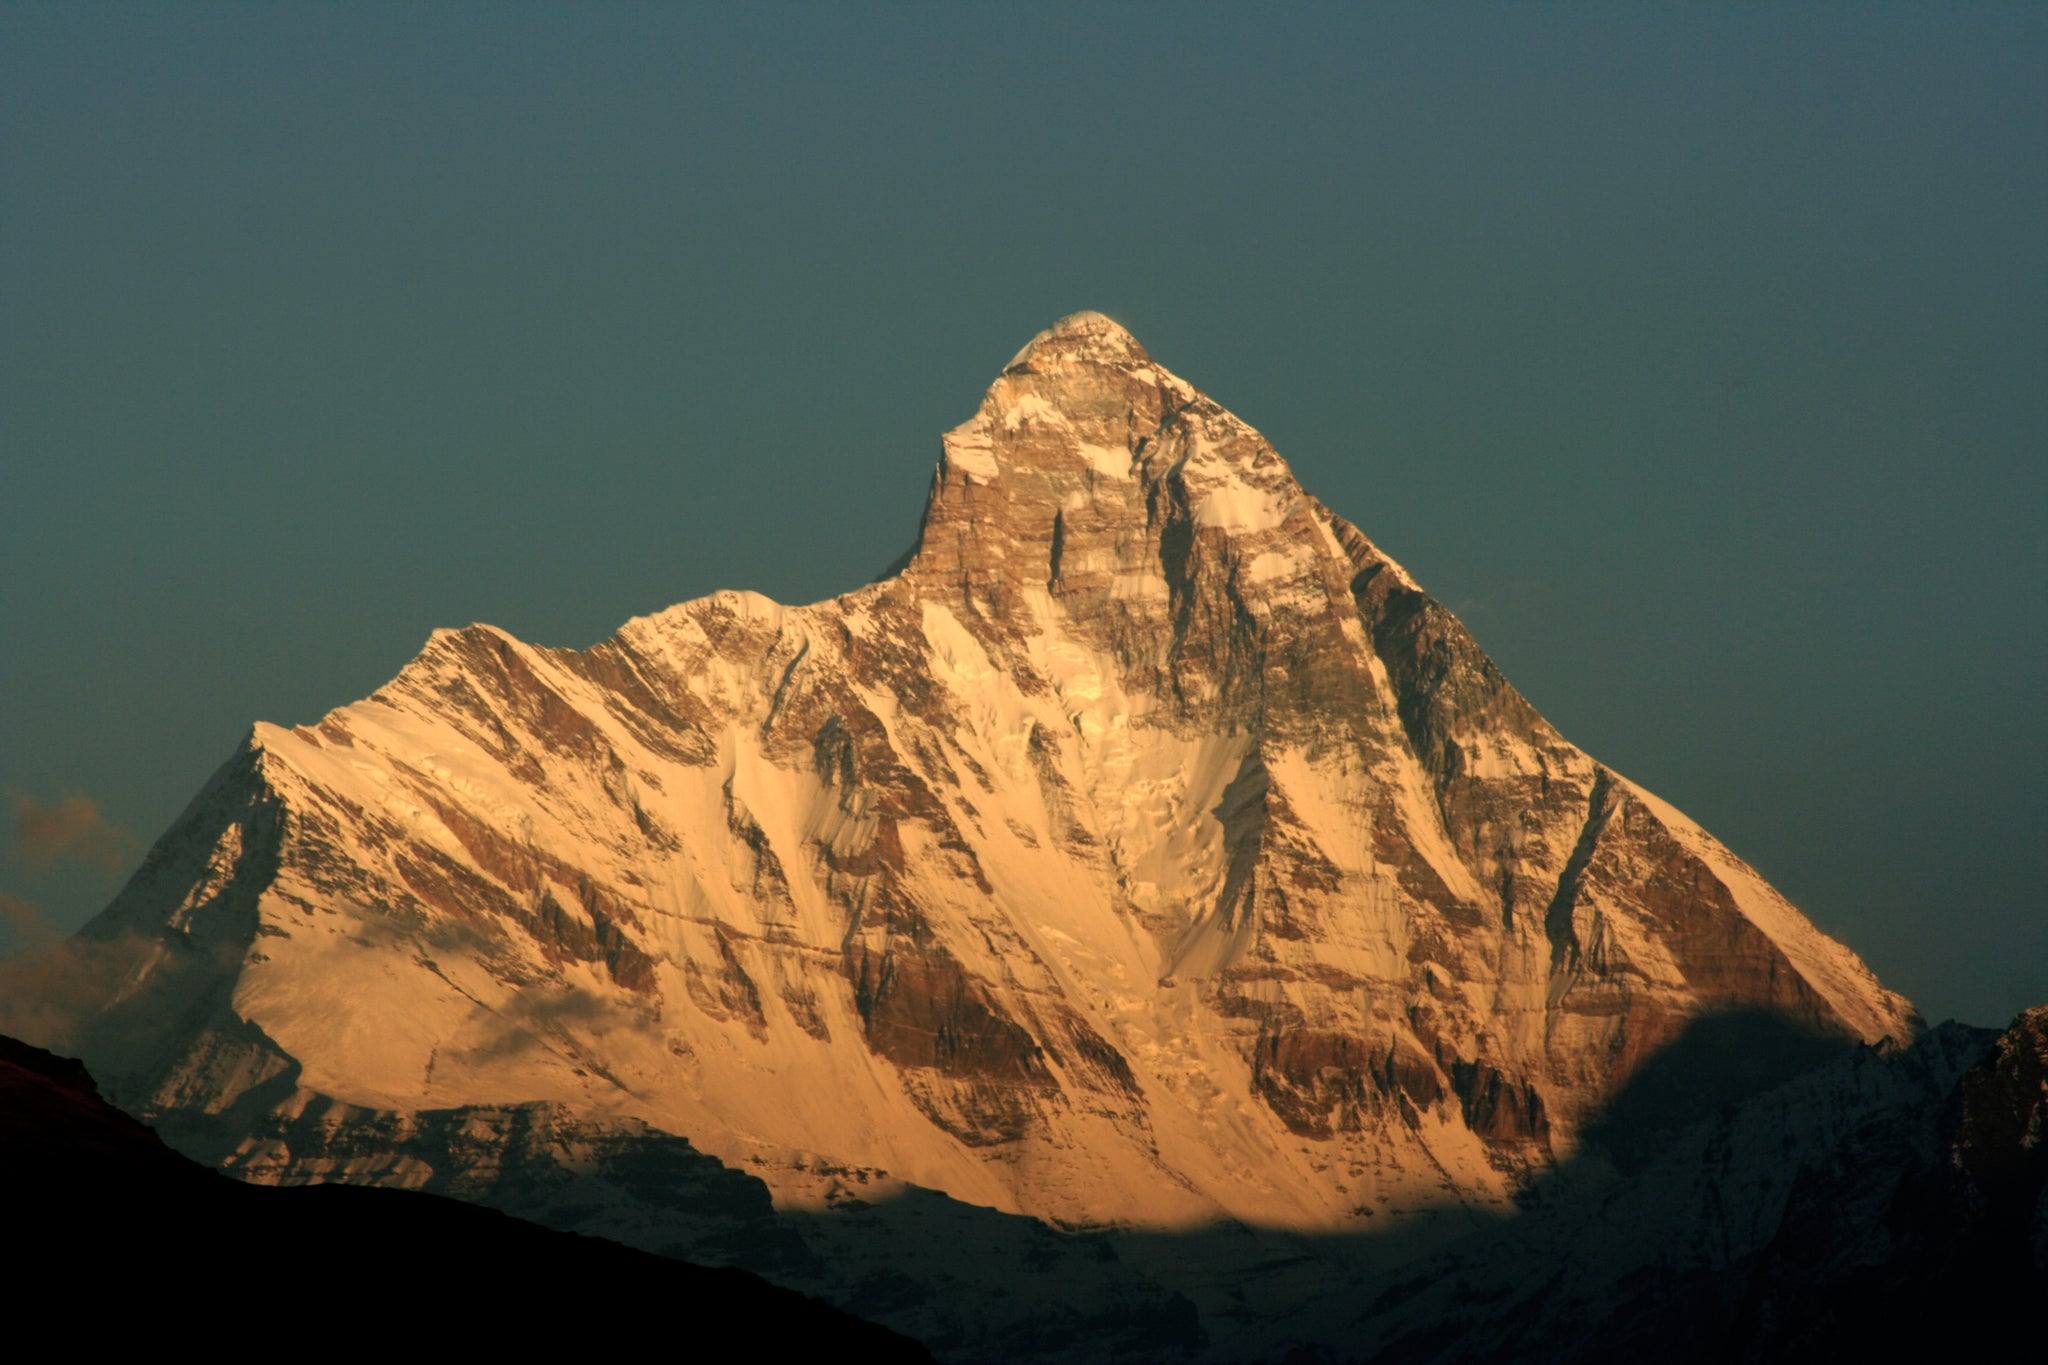 An expedition to find the plutonium lost on India's mountain ranges